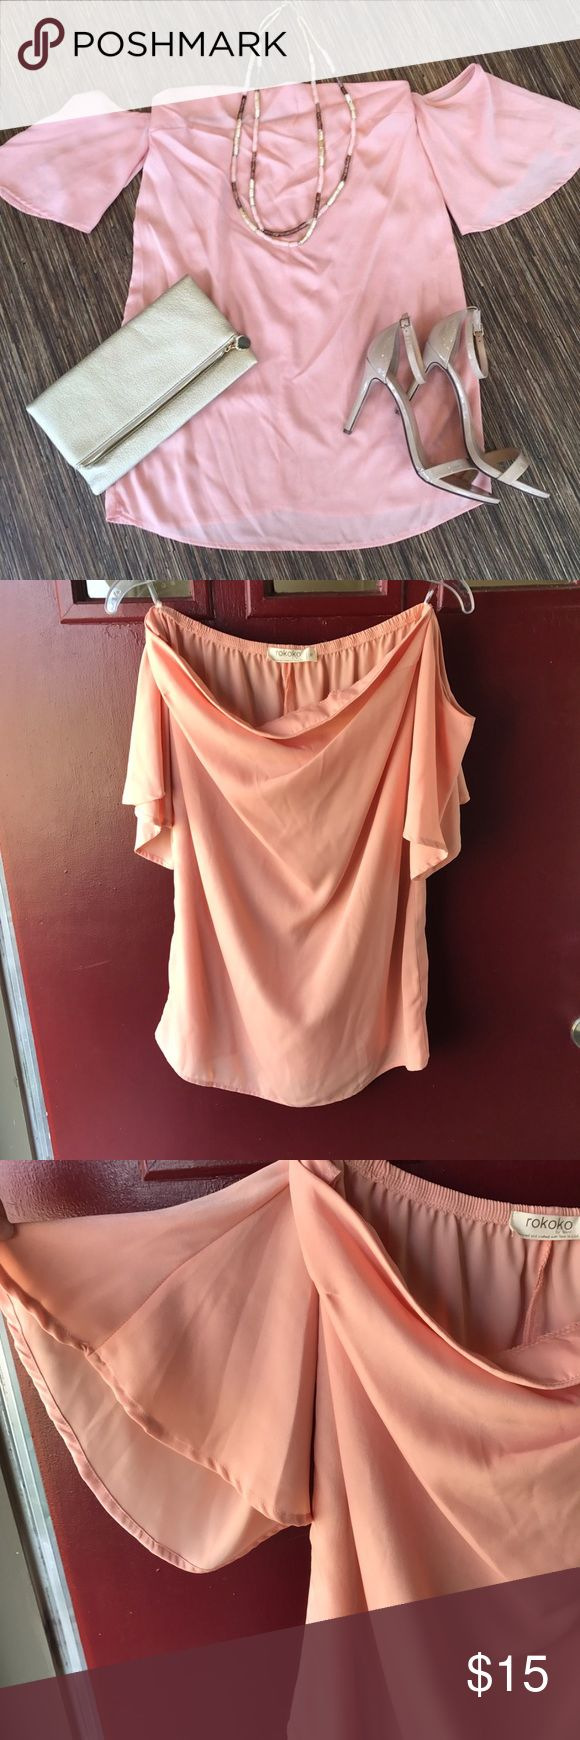 Off the shoulder flutter sleeve dress This cute baby pink/peach dress is perfect for spring into summer! The outfitted picture is natural light, while the hanging pictures are not natural light. Never worn, but tag not attached. rokoko Dresses Mini